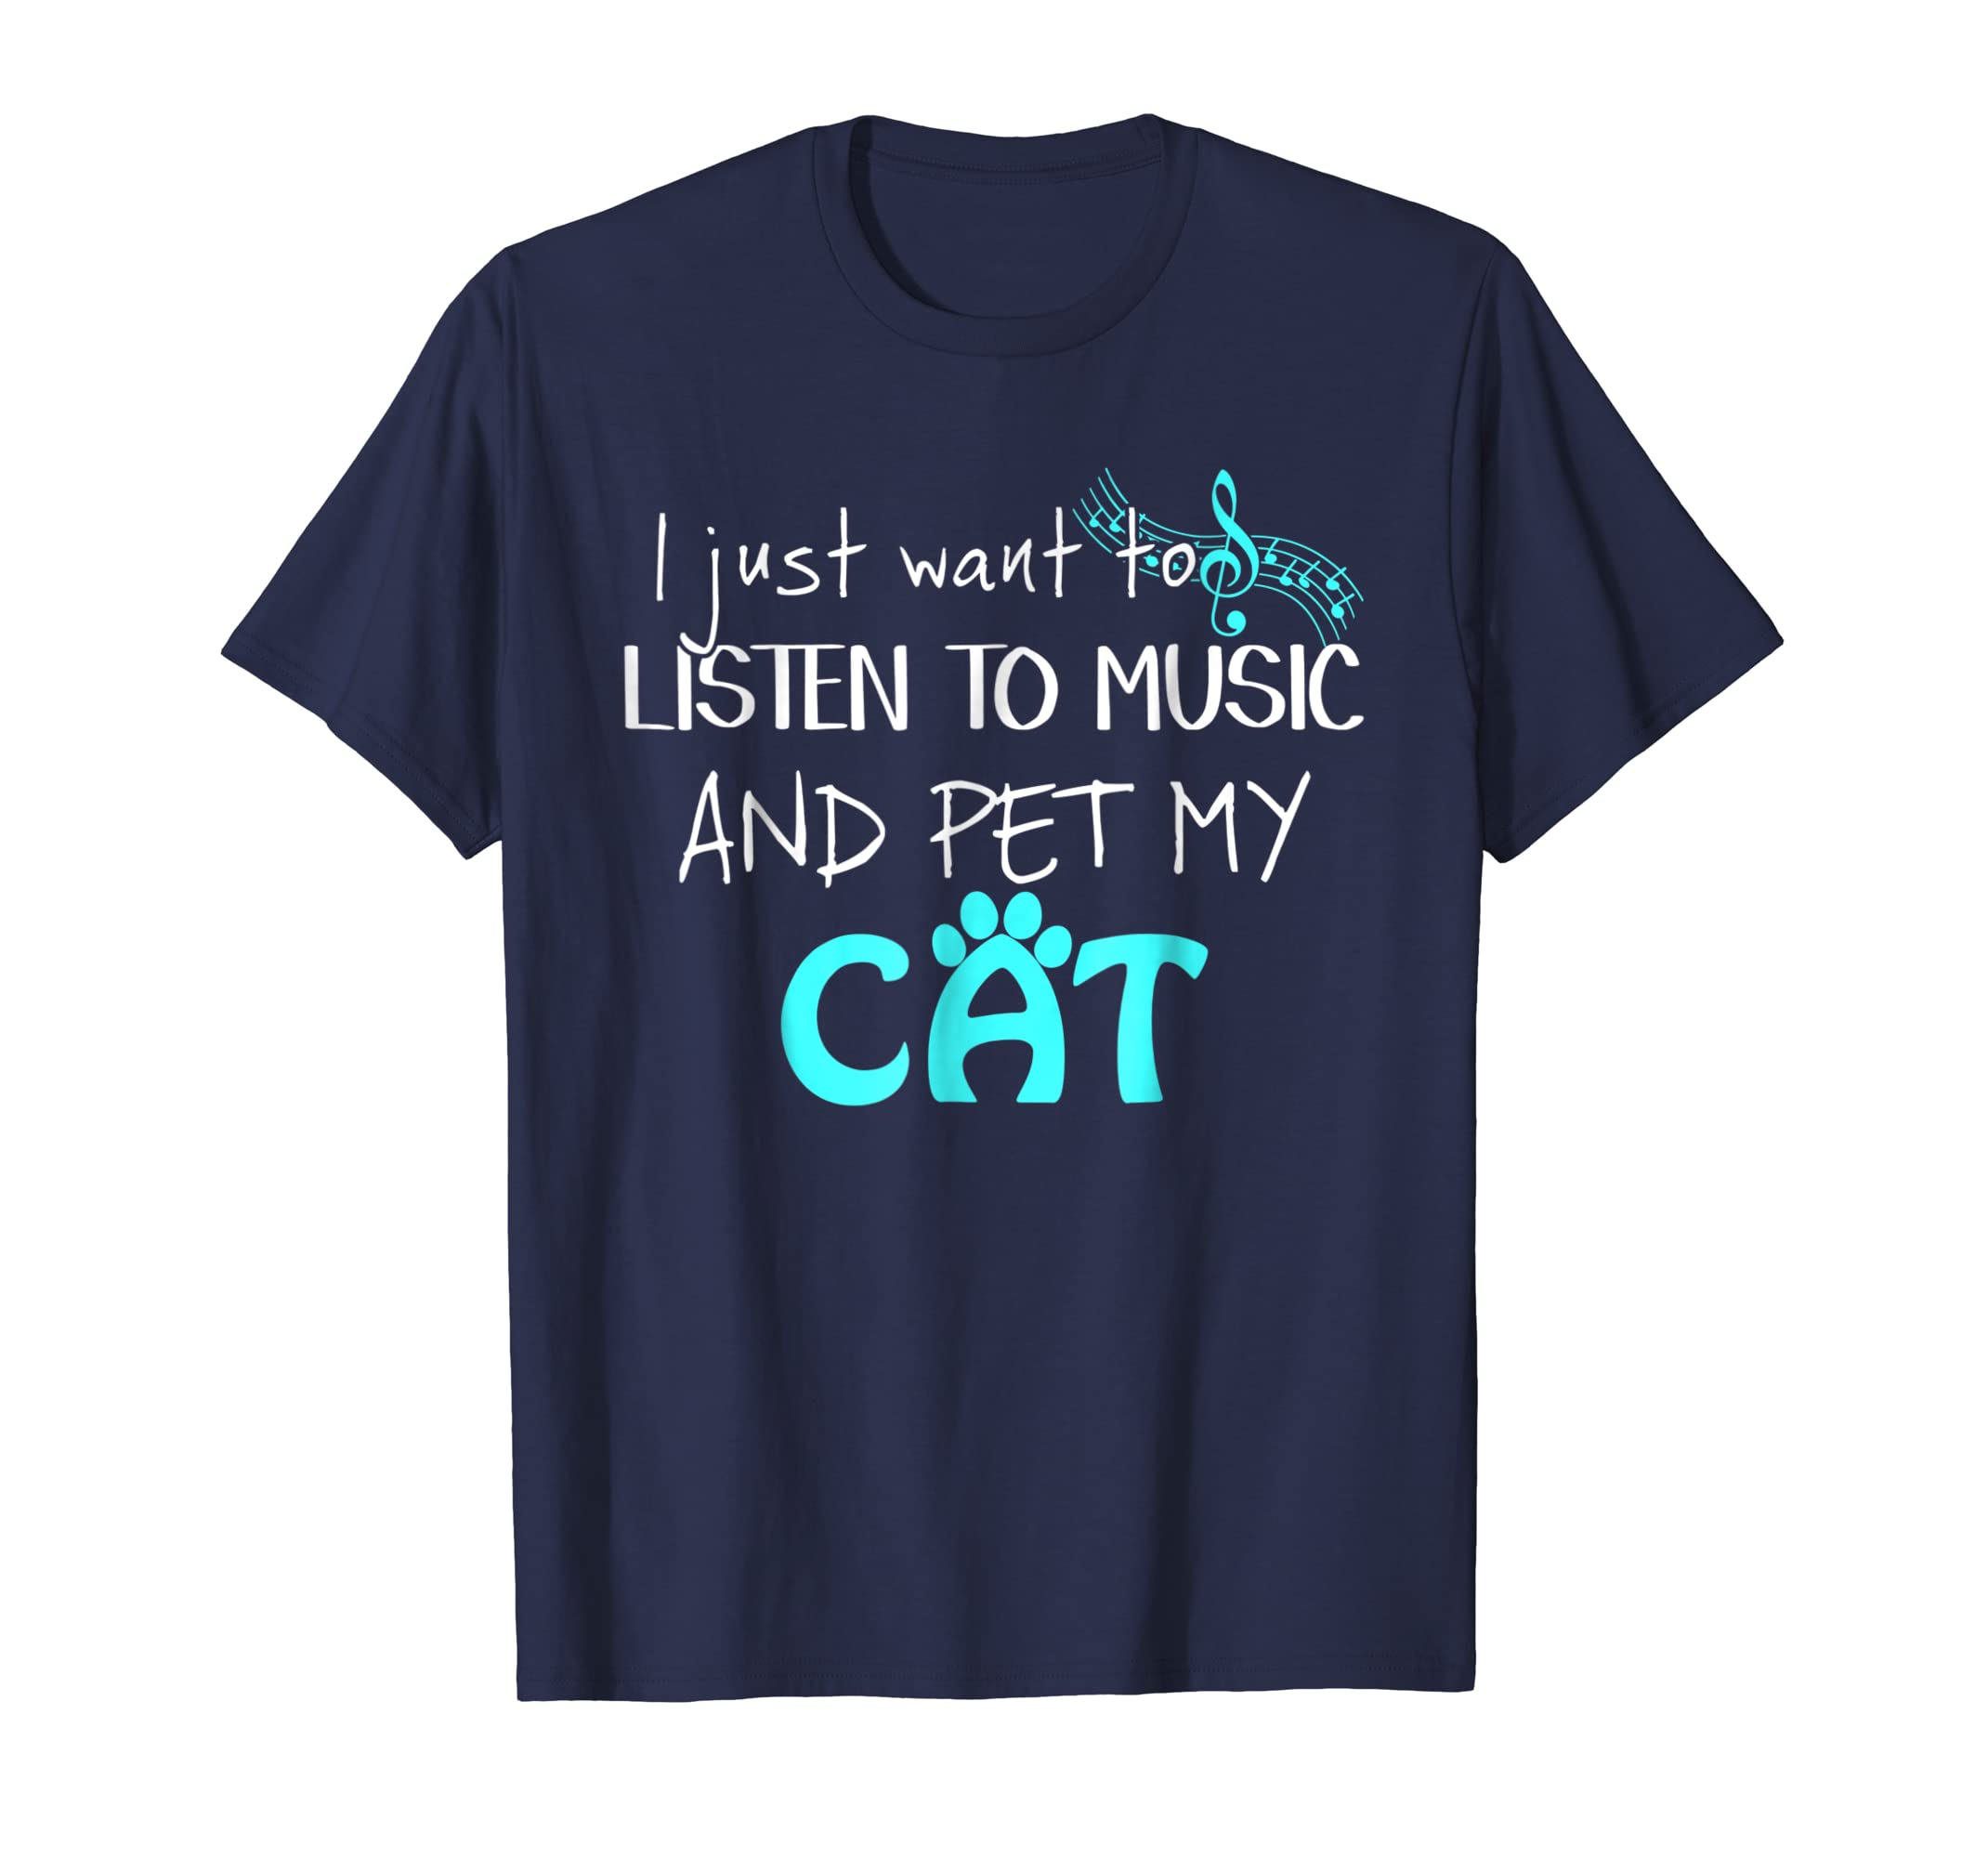 Listen to Music and Pet my Cat. Music and Pet Lover T-Shirt-AZP